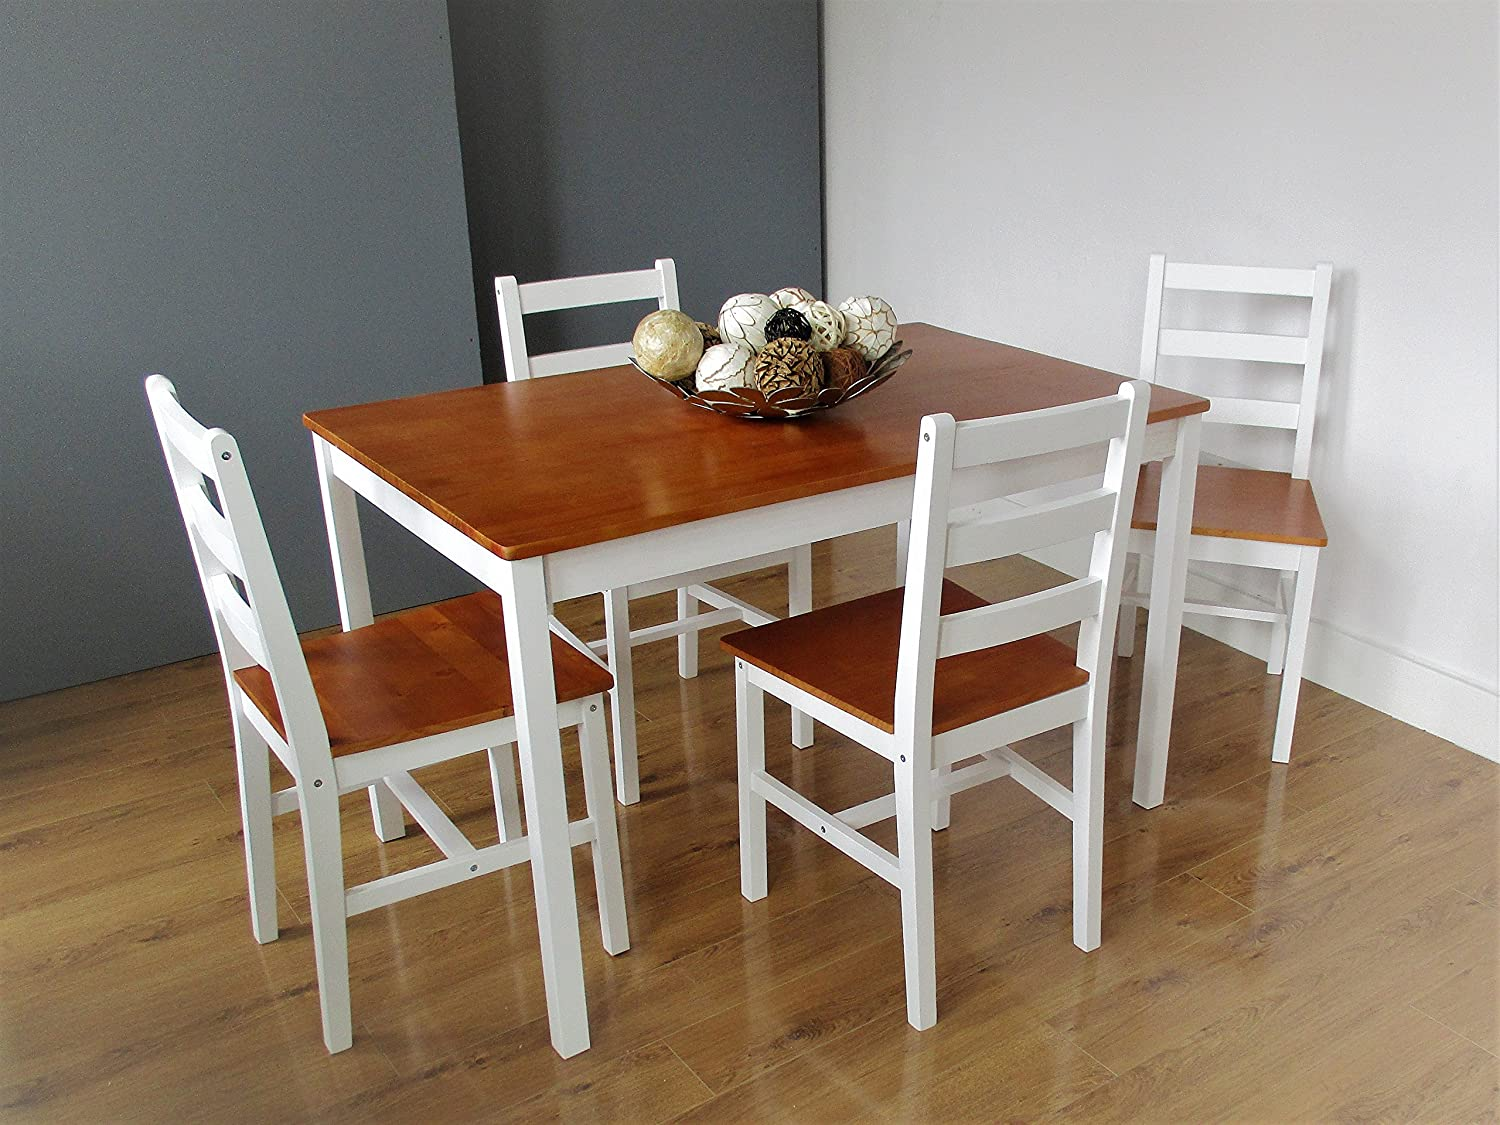 Miraculous Modena Wooden Dining Table With 2 Or 4 Chairs And Bench By Smart Design Furnishings 4 Seats Caraccident5 Cool Chair Designs And Ideas Caraccident5Info